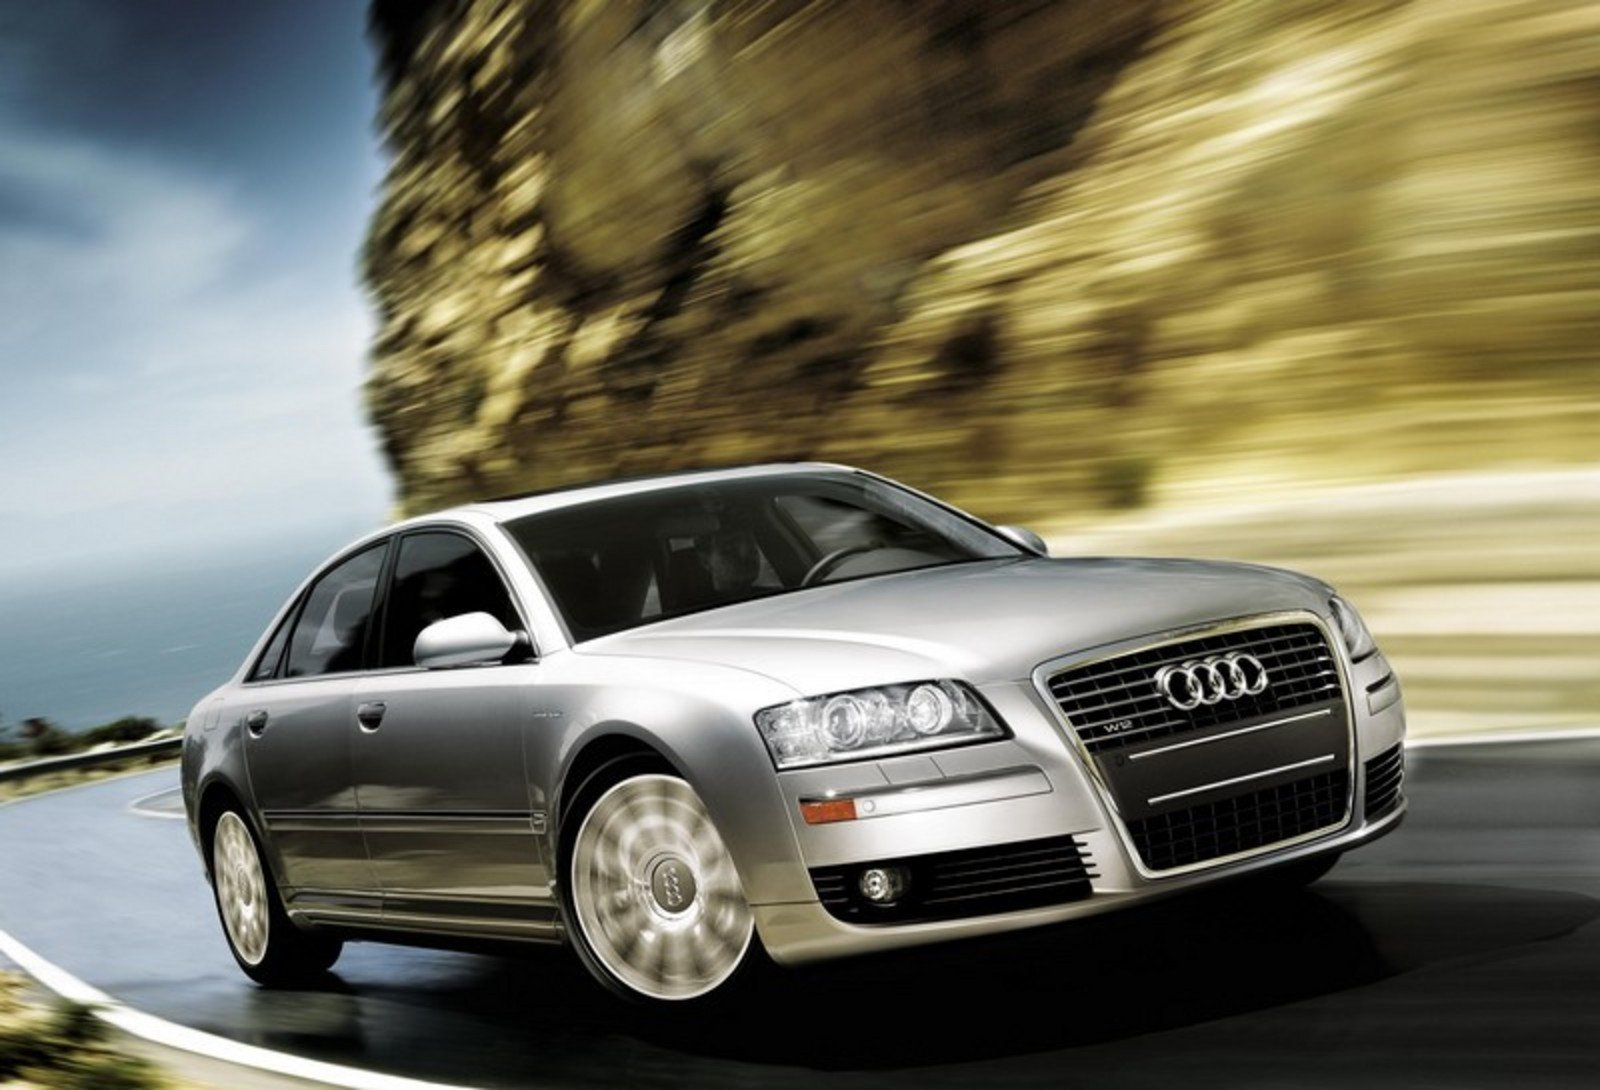 2006 audi a8 l w12 picture 45336 car review top speed. Black Bedroom Furniture Sets. Home Design Ideas